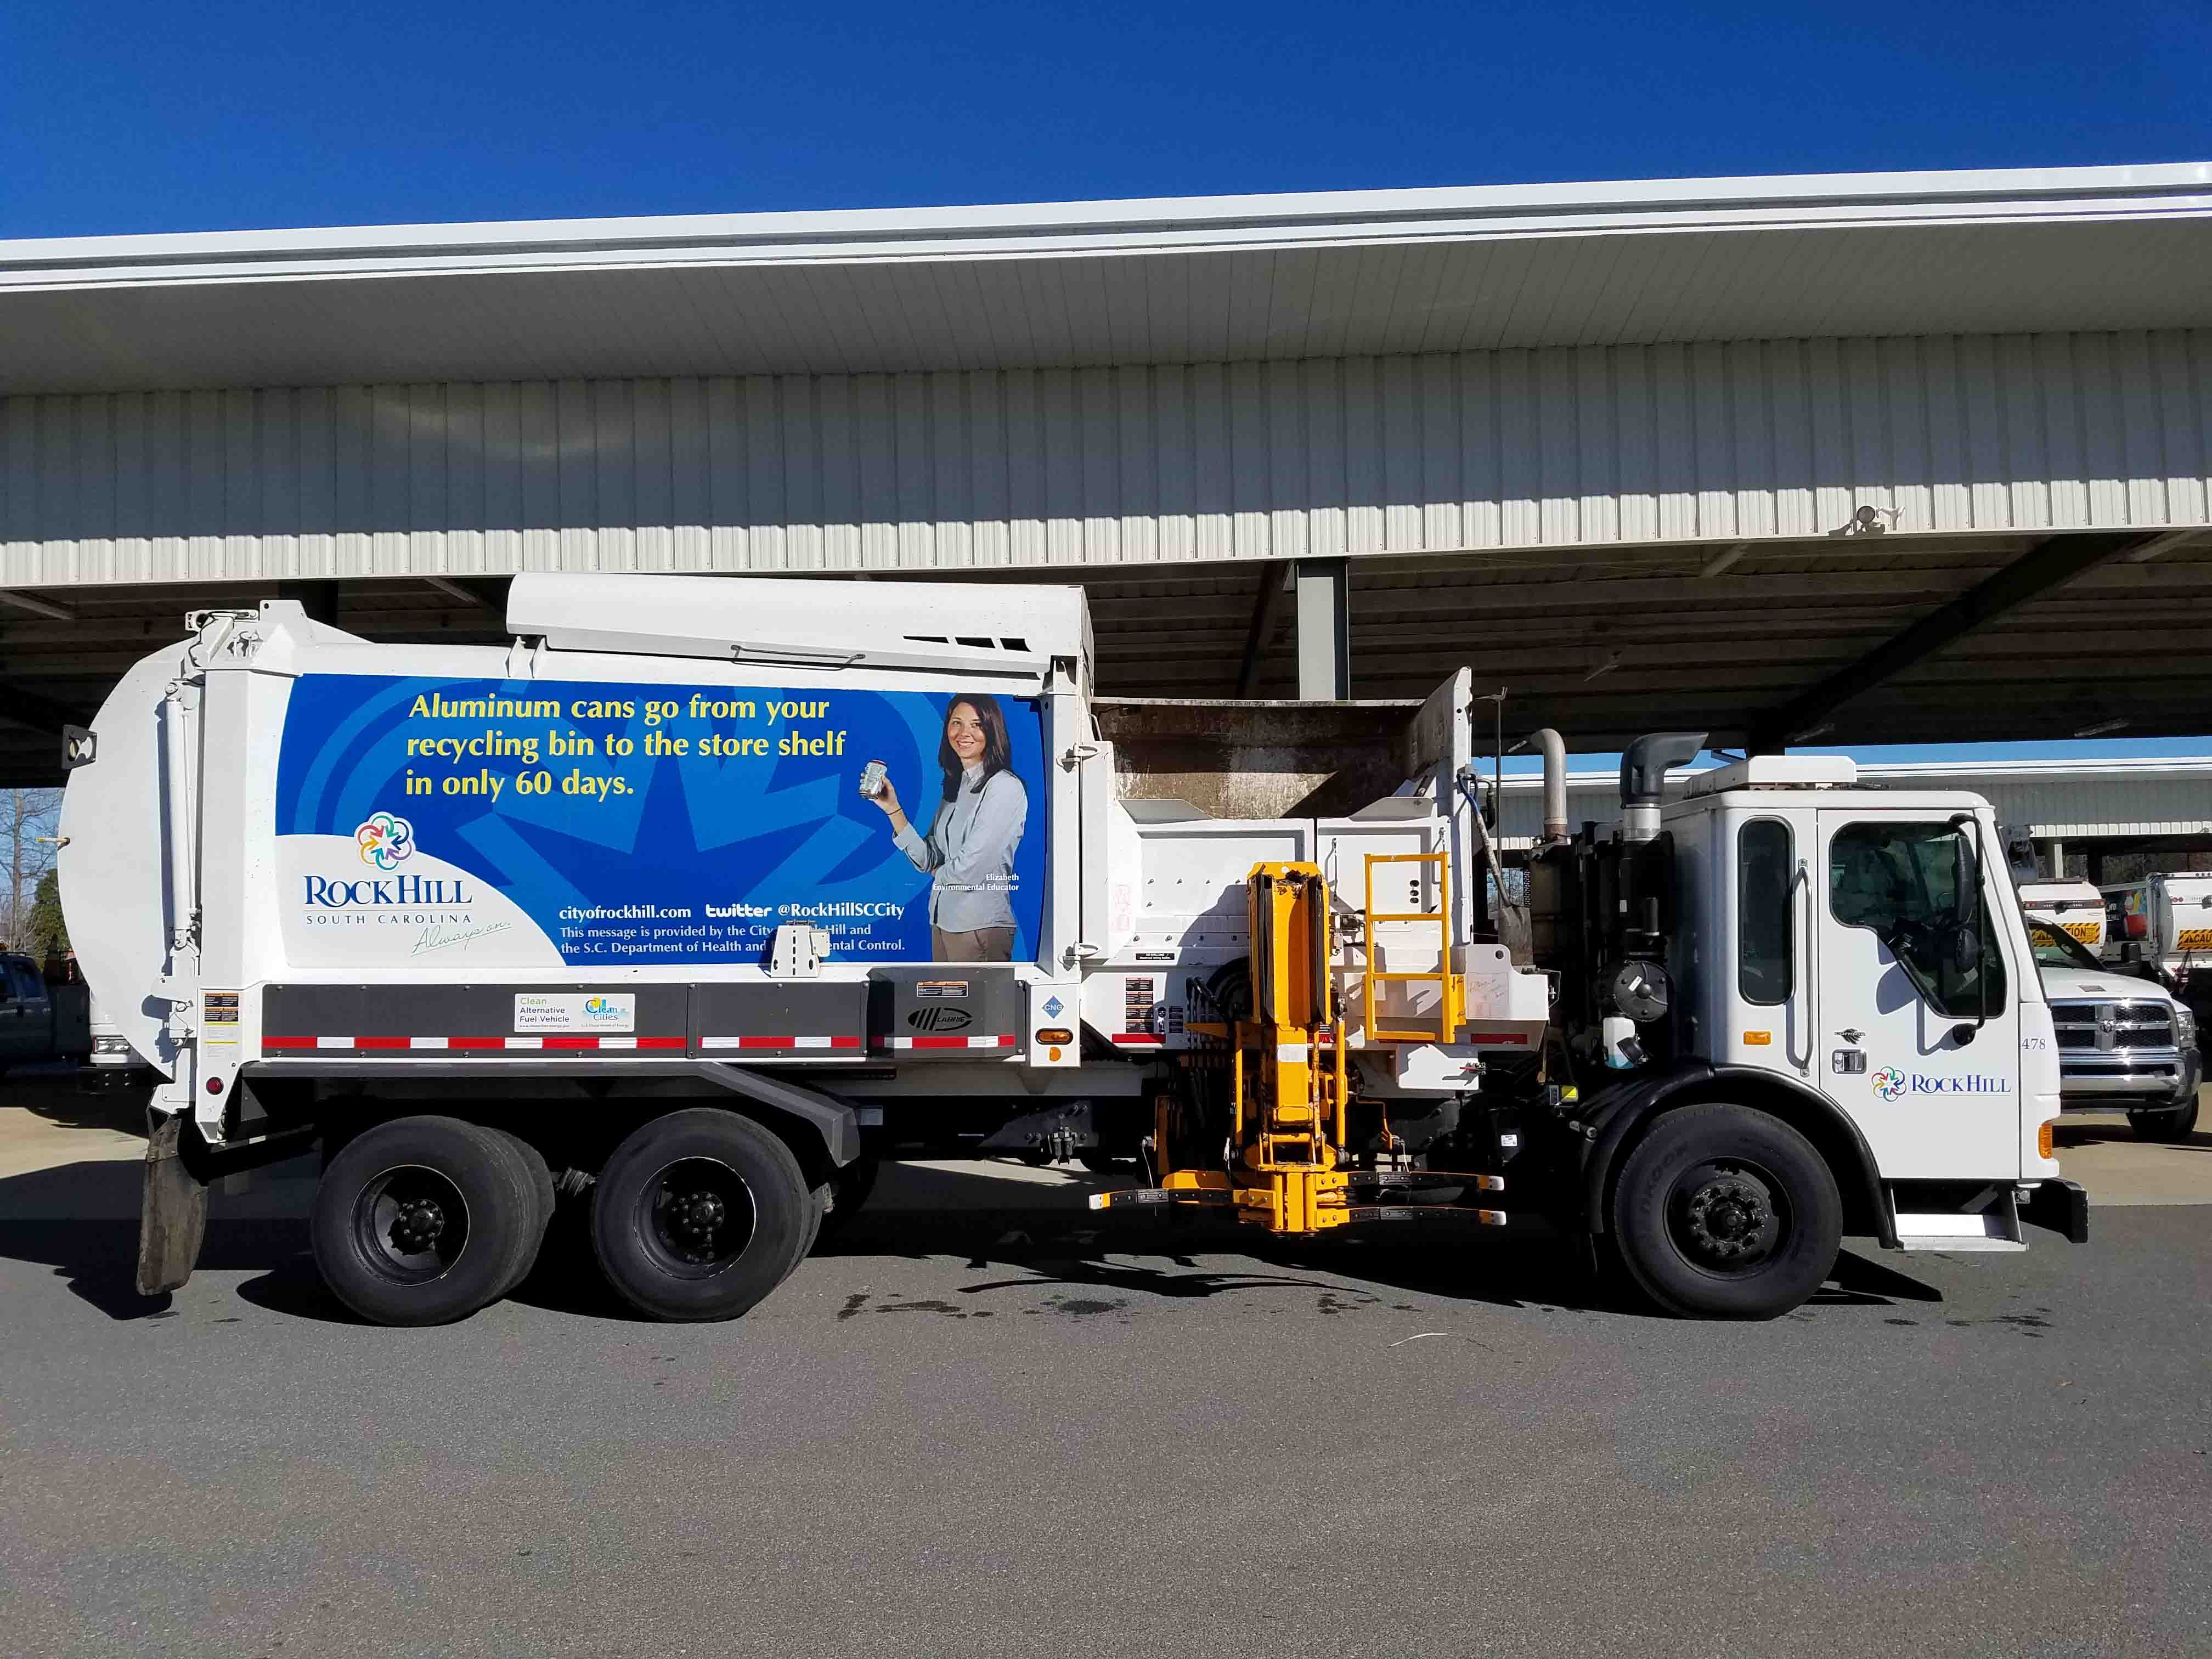 Rock Hill CNG alternative fuel garbage truck